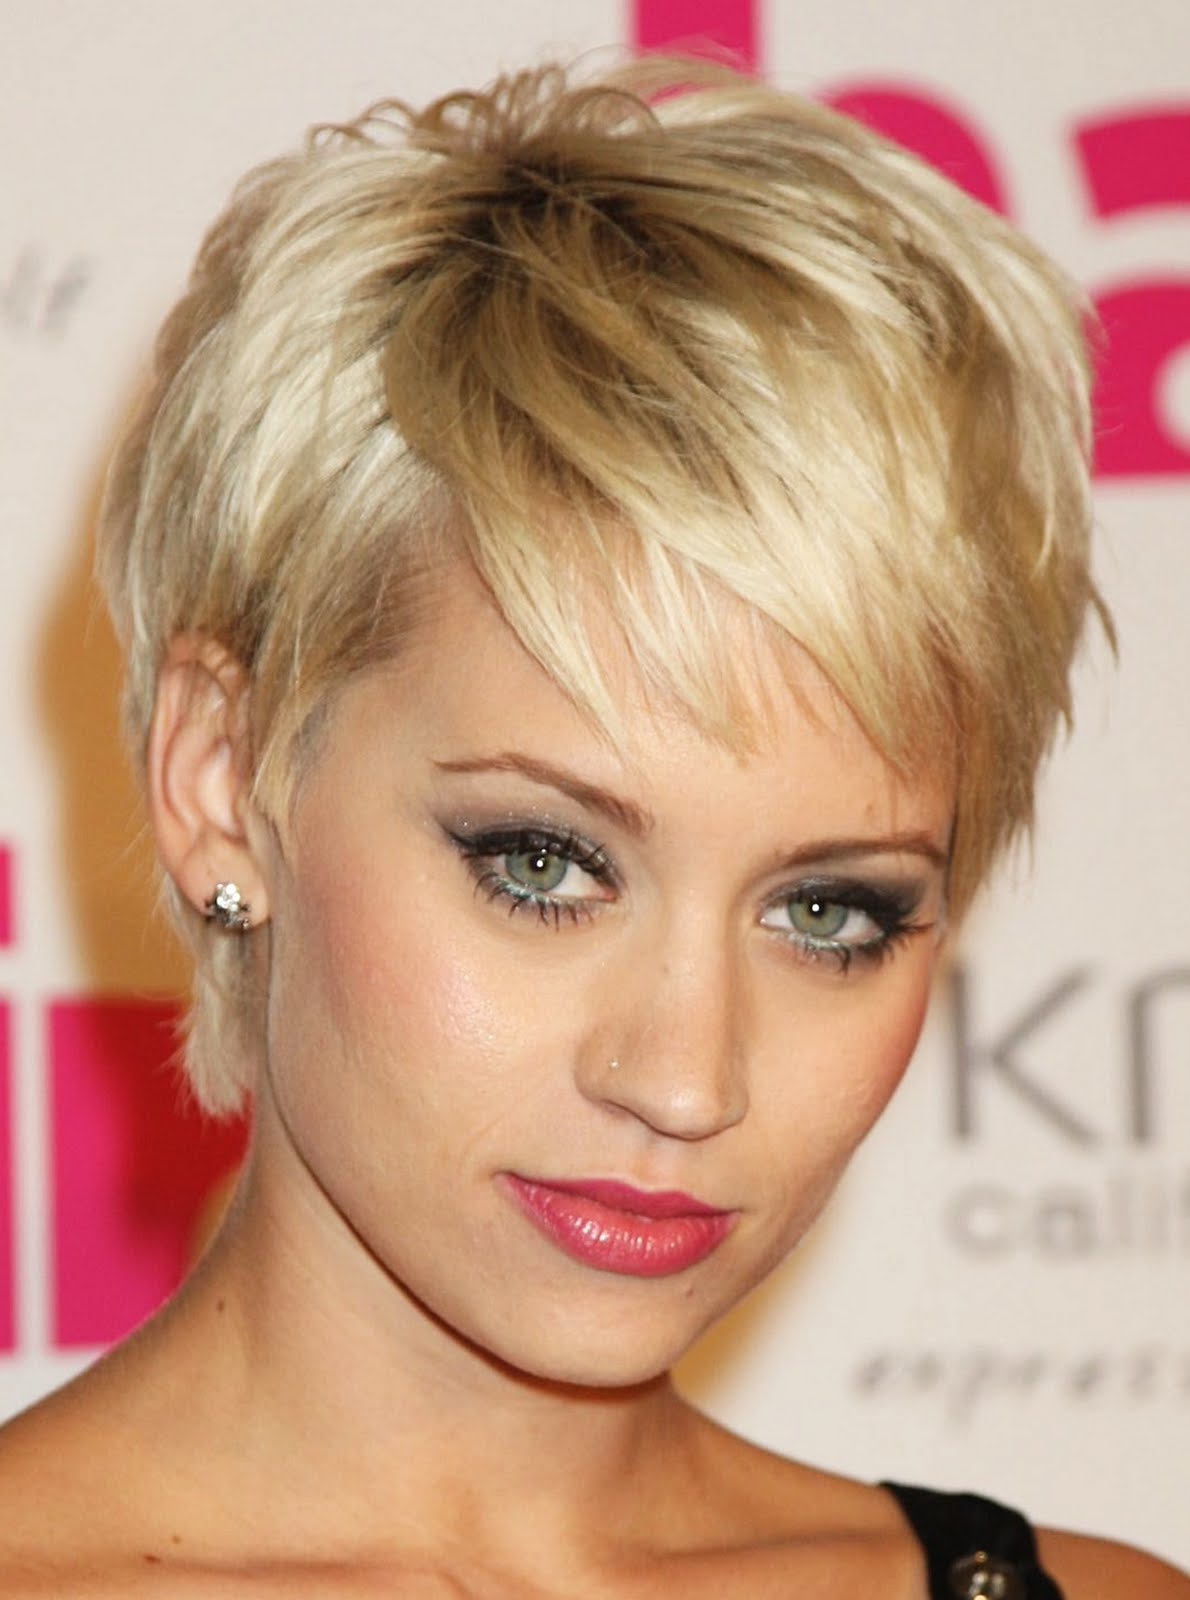 Hairstyles 2011: Celebrity Short Hairstyles For Oval Face